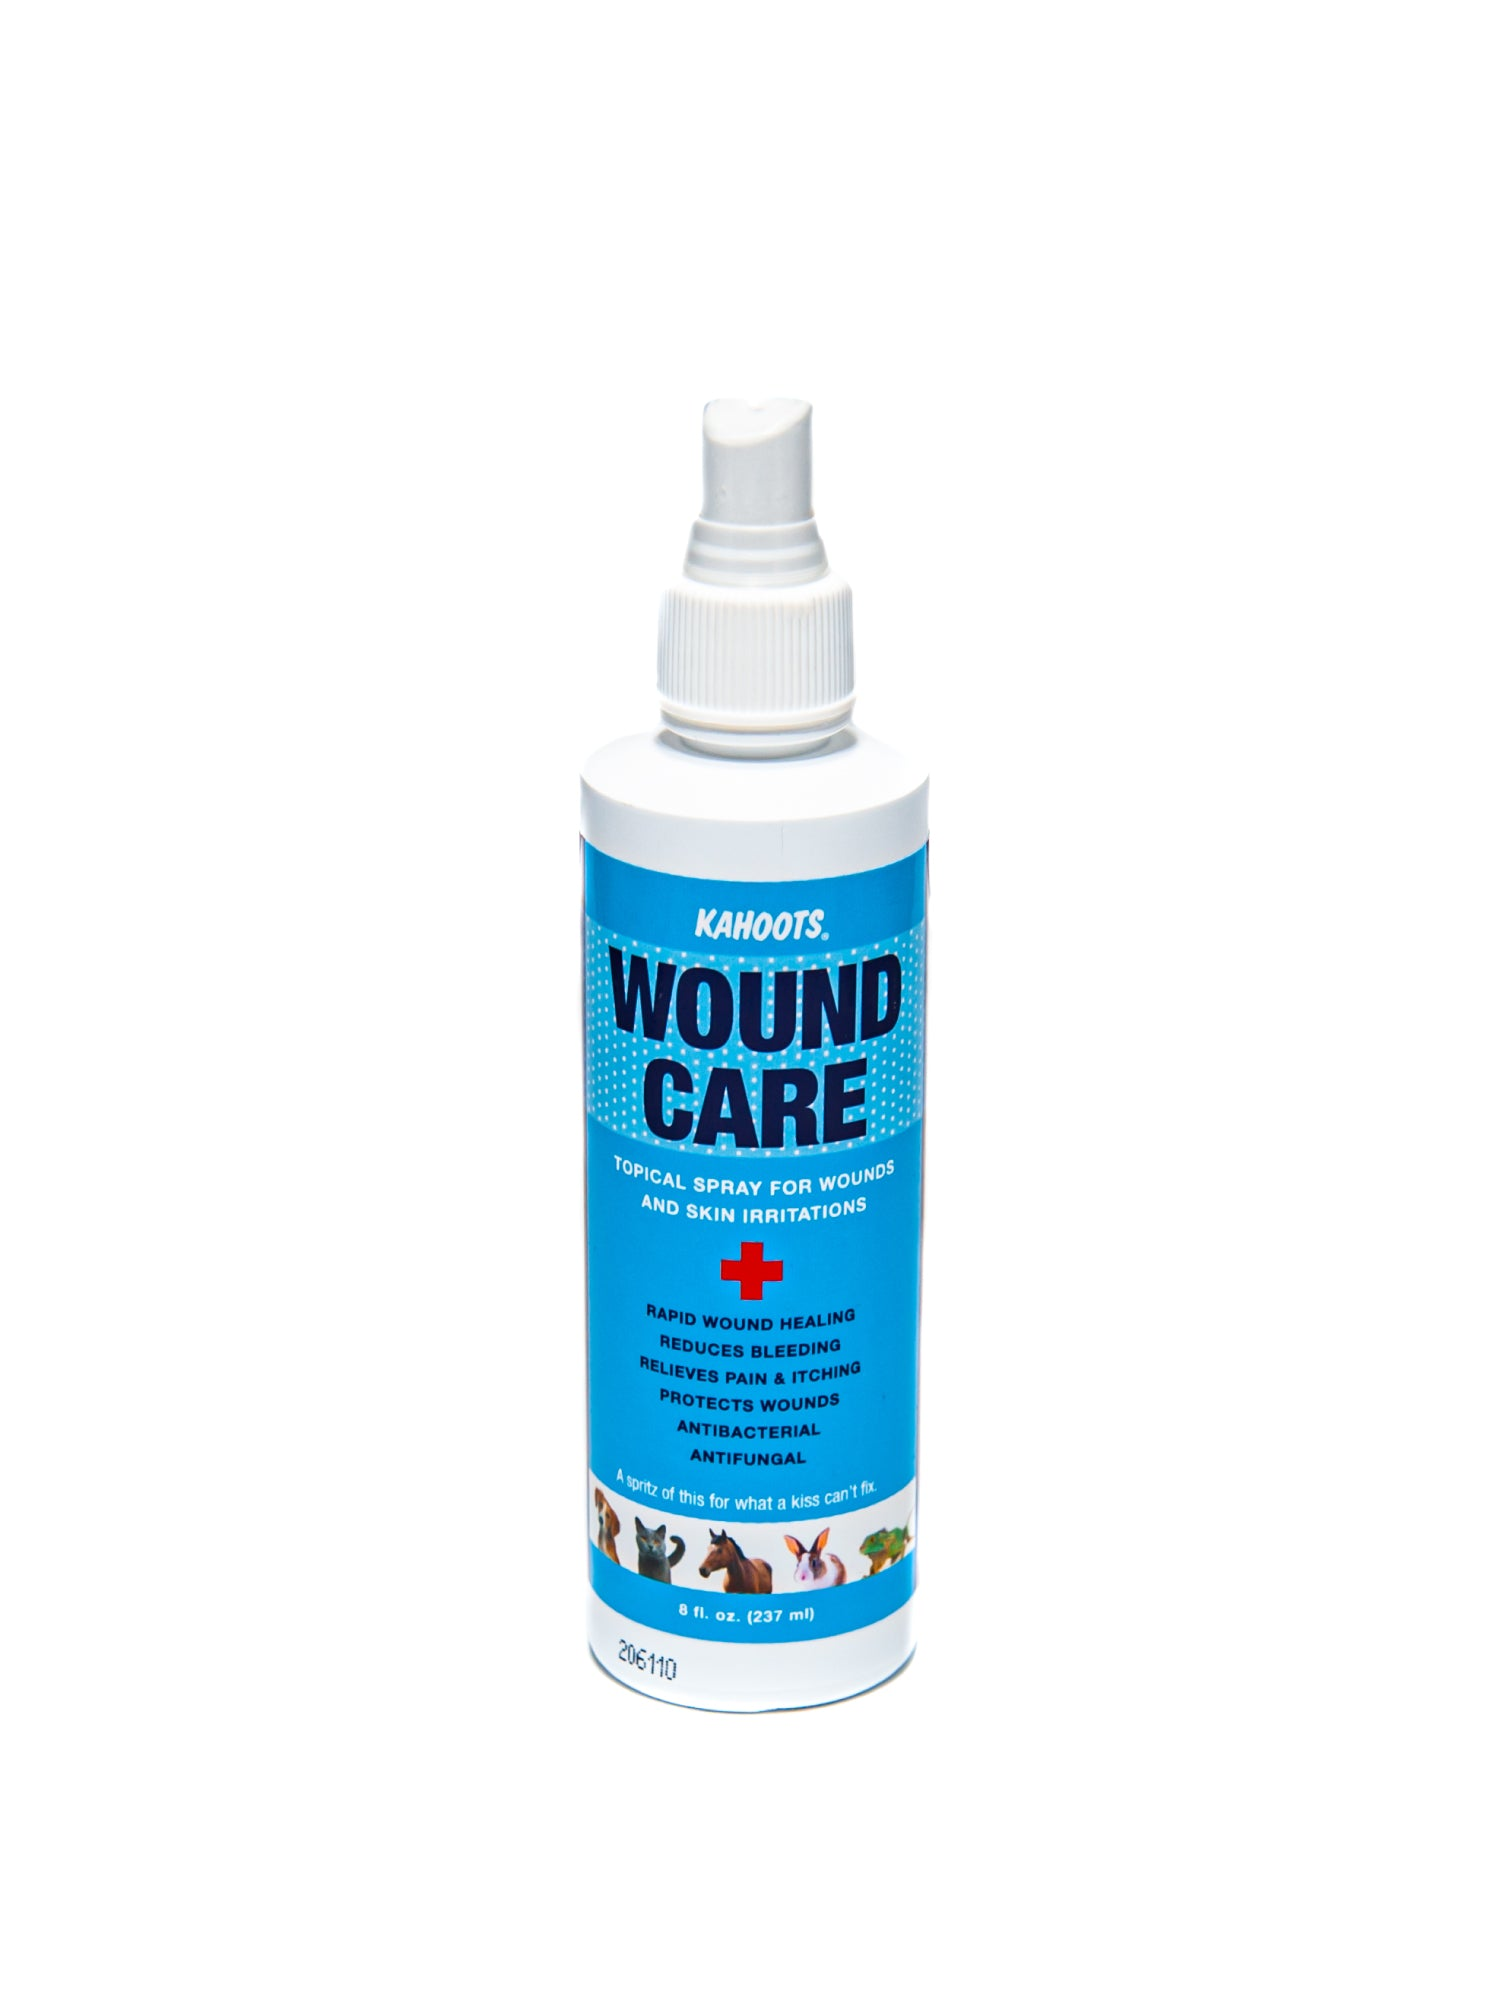 Kahoots wound care spray. white bottle with a blue label and pictures of various animals